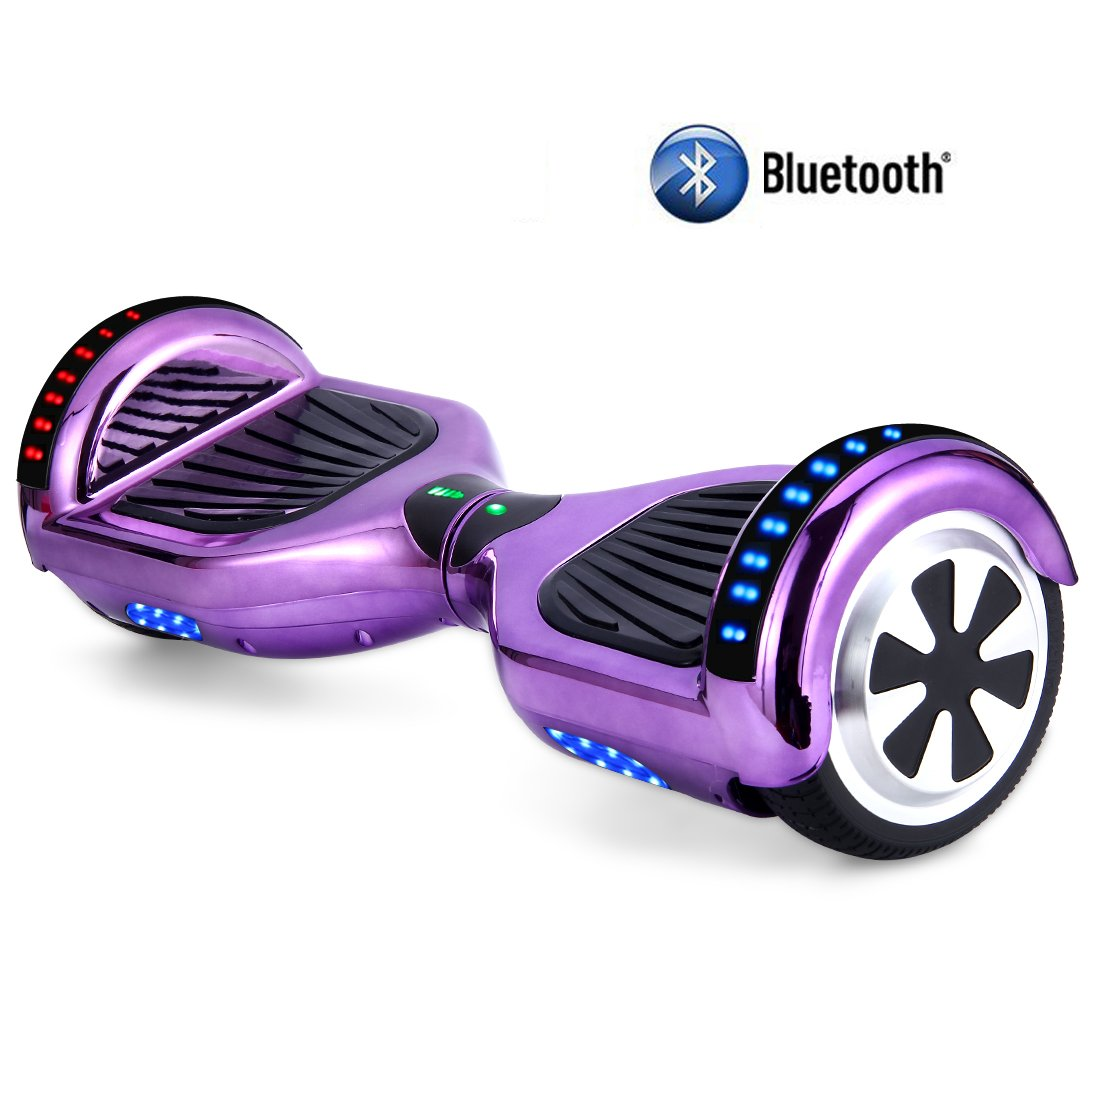 STF-Life UL 2272 Certified Hoverboard with Bluetooth Speaker and LED Lights, Smart Personal Two- Wheel Electric Self Balancing Scooter Transporter for Kids and Adults-Chrome Purple